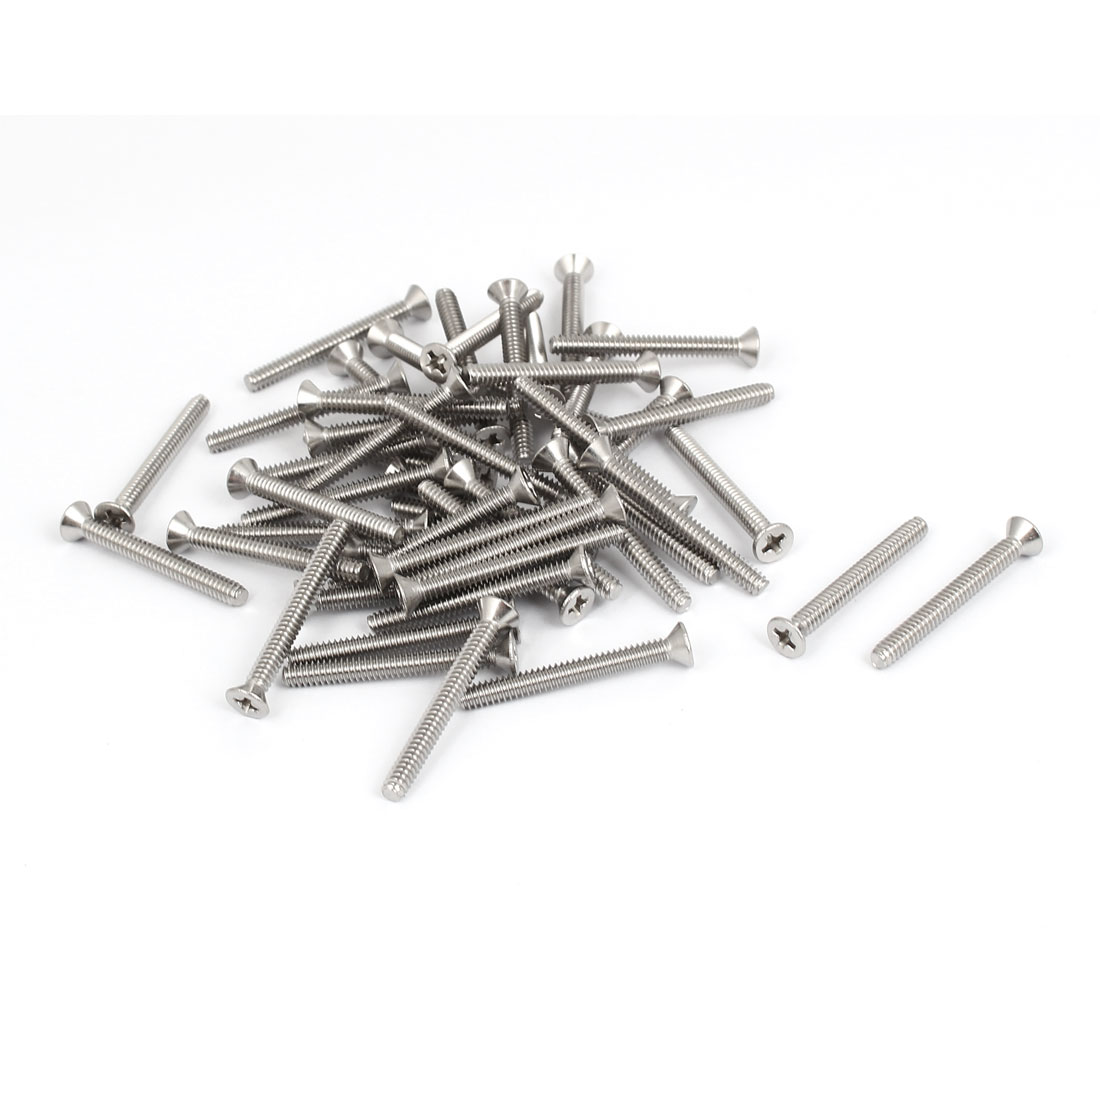 "6#-32x1-1/4"" 304 Stainless Steel Phillips Flat Countersunk Head Screws 50pcs"